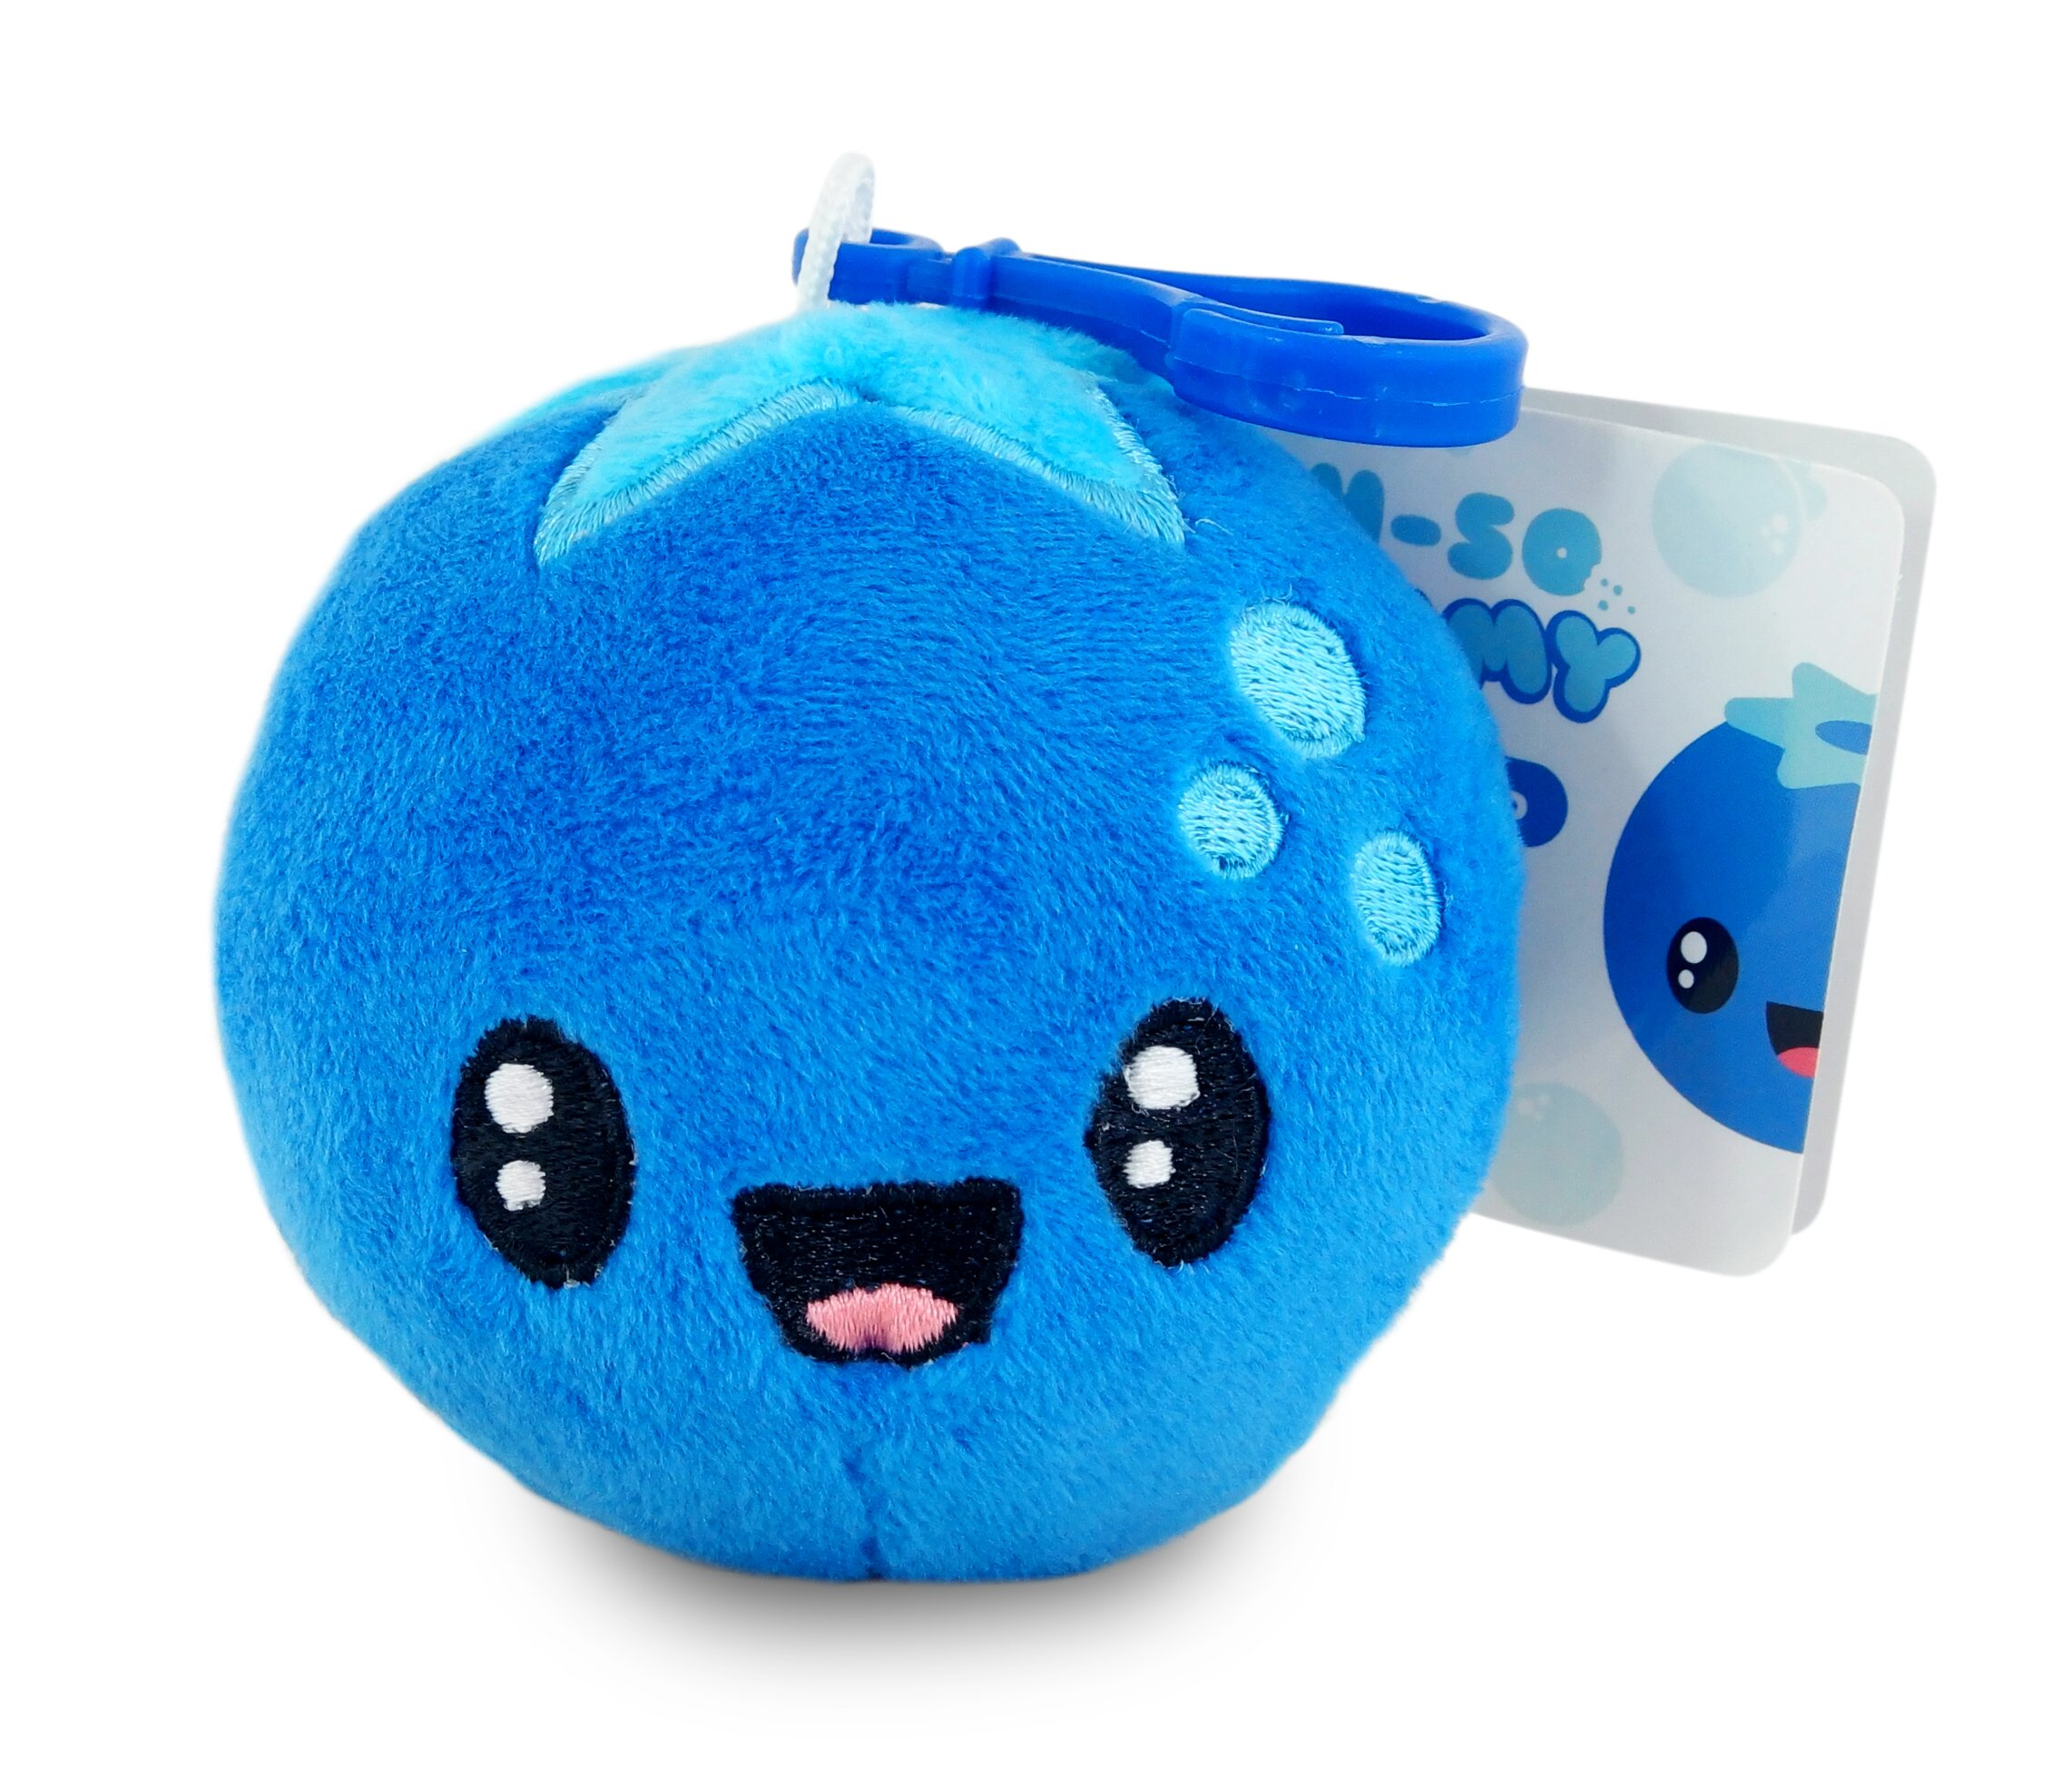 Scentco Fruit Troop Backpack Buddies - Scented Plush Toy Clips - Blueberry